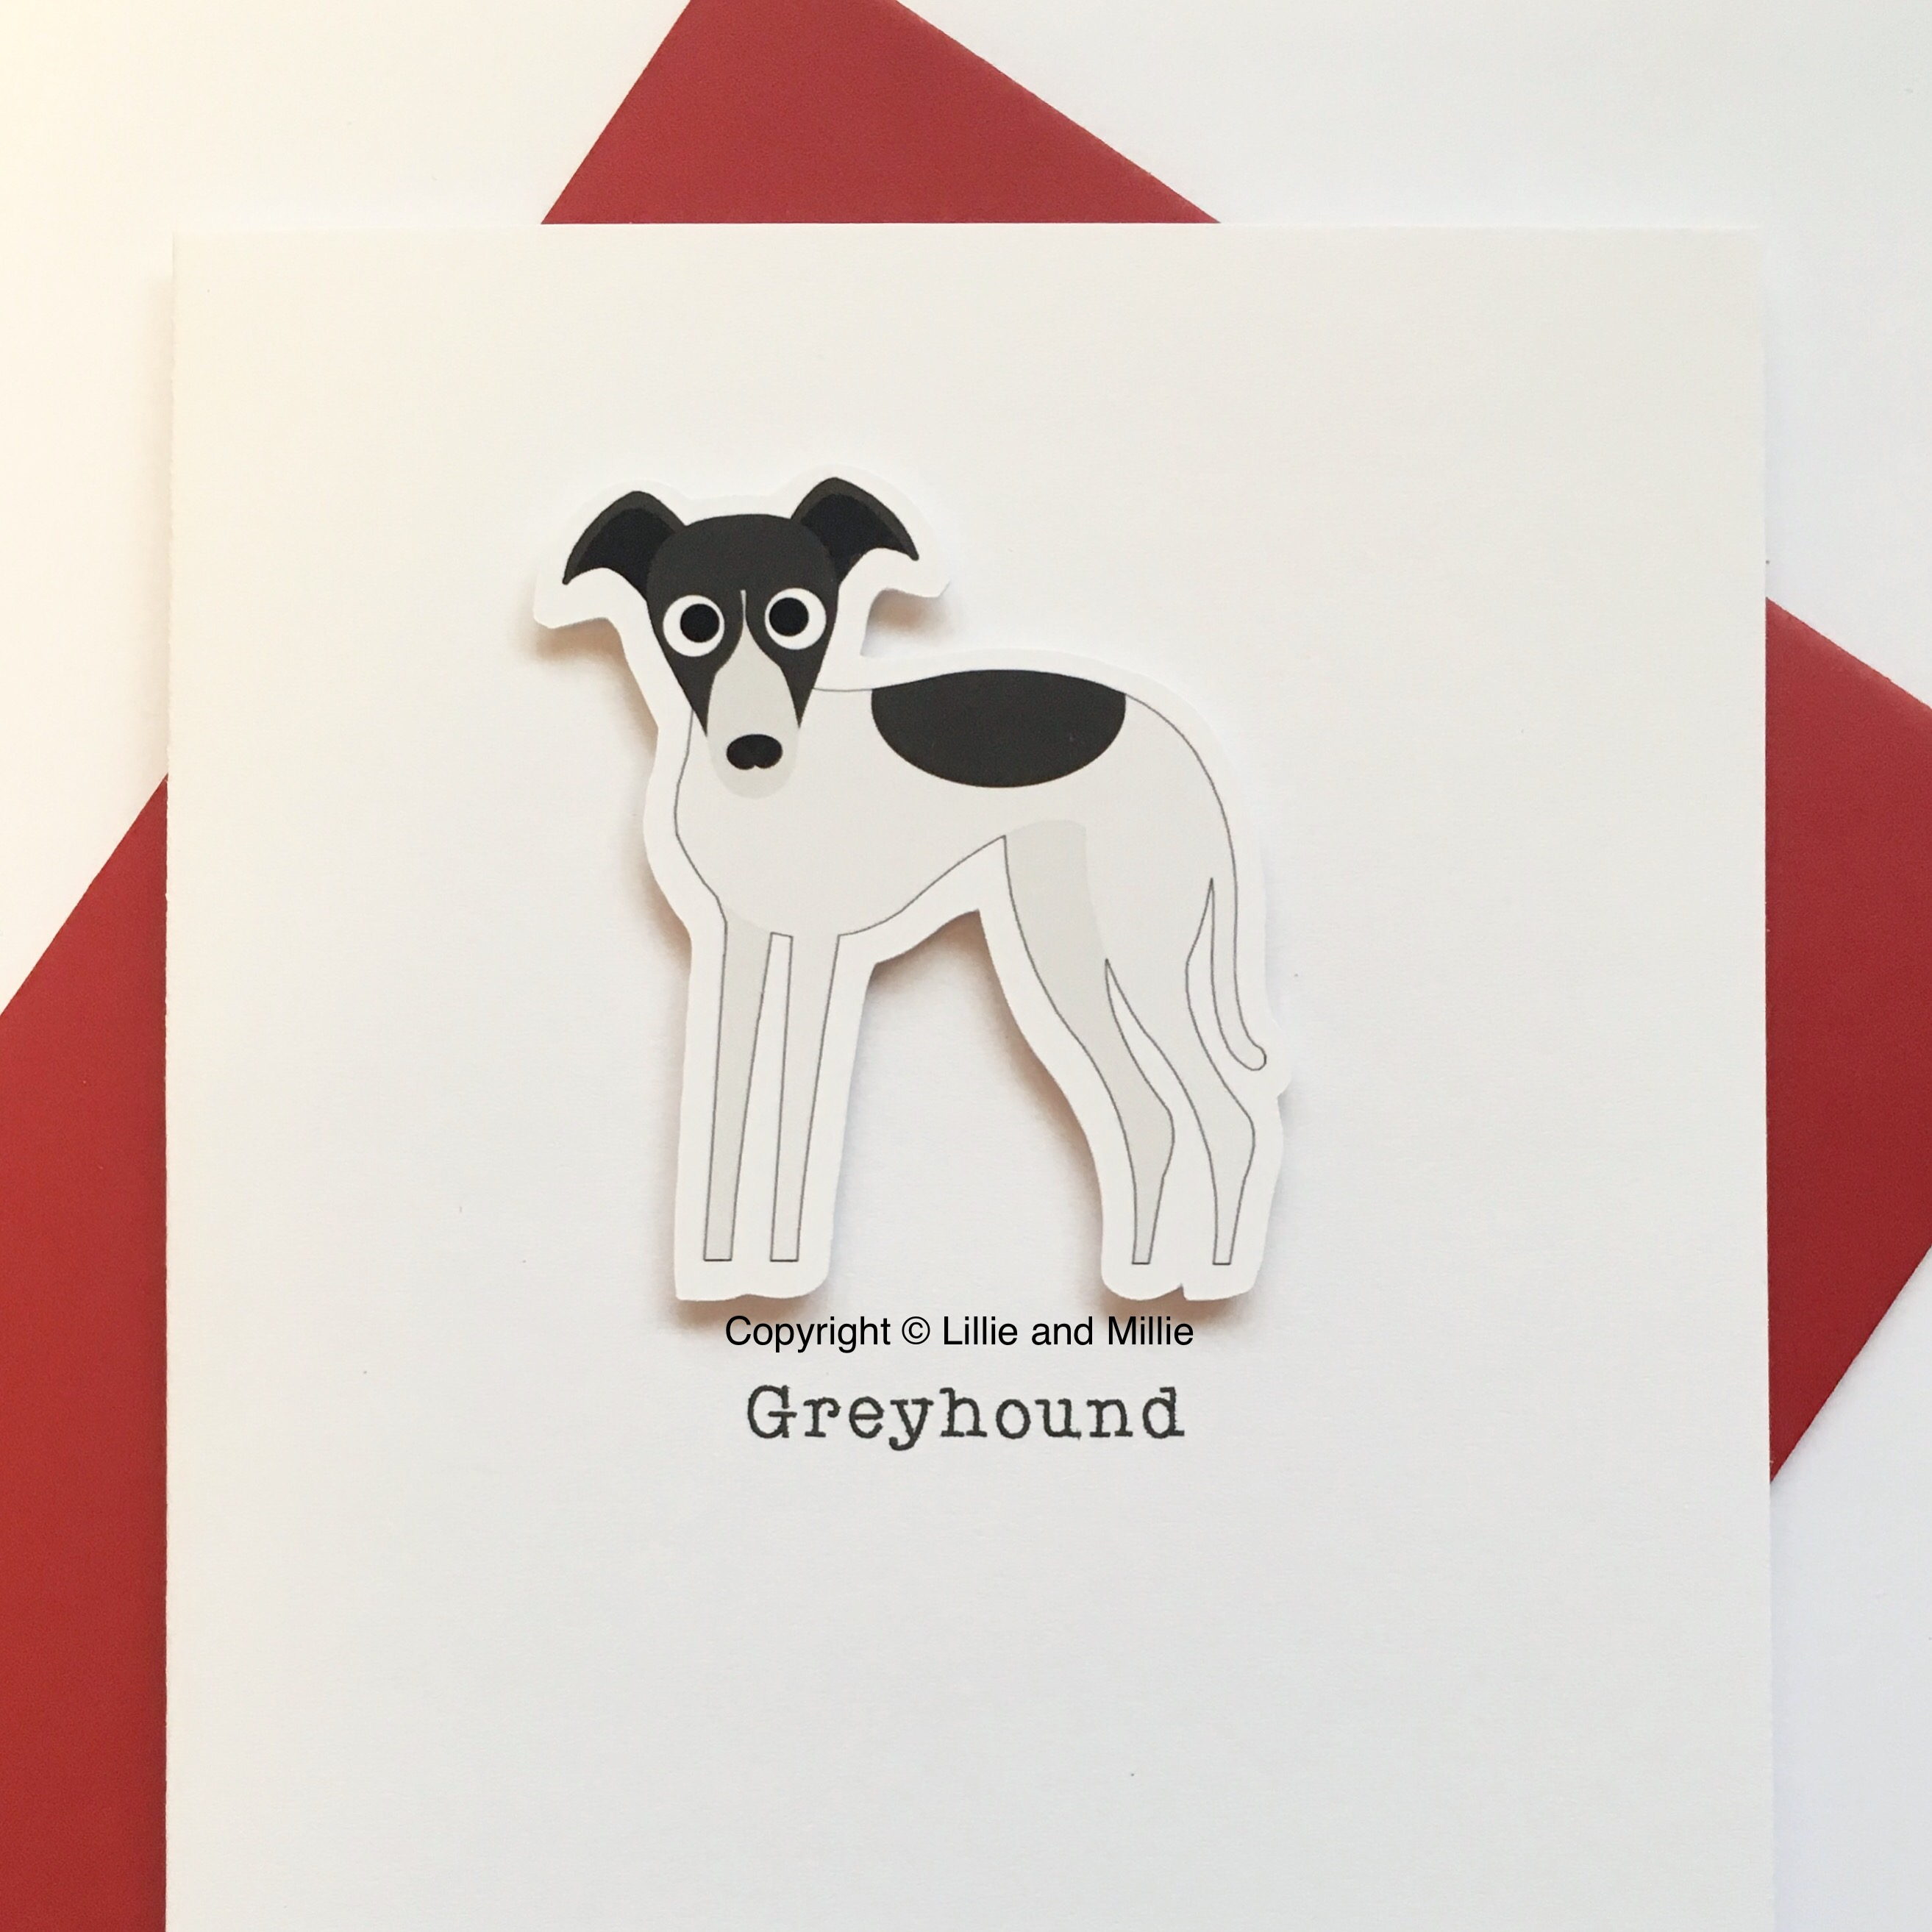 Greyhound Dog Greetings Card